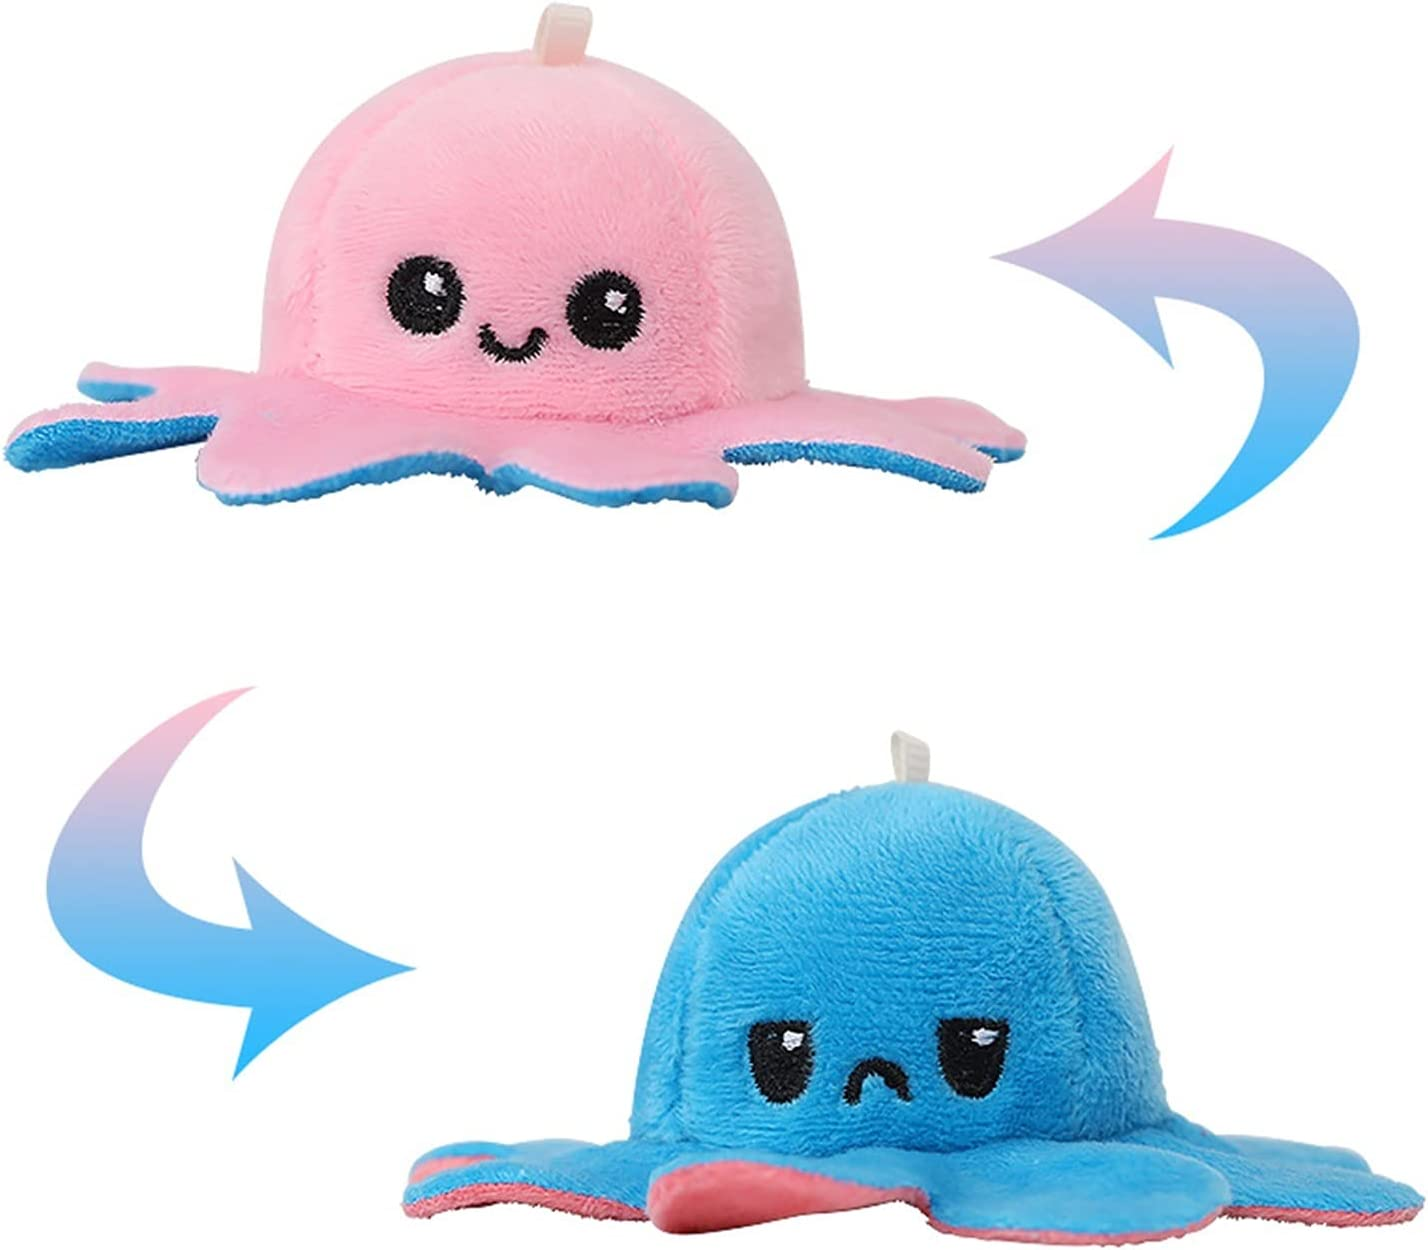 XIAOXINGXING Fashion Colorful Octopus Keychain and Bag Pendant Plush Animal Keychains Gift 1pcs Keychain Key Chains (Color : 3, Size : 10 cm)